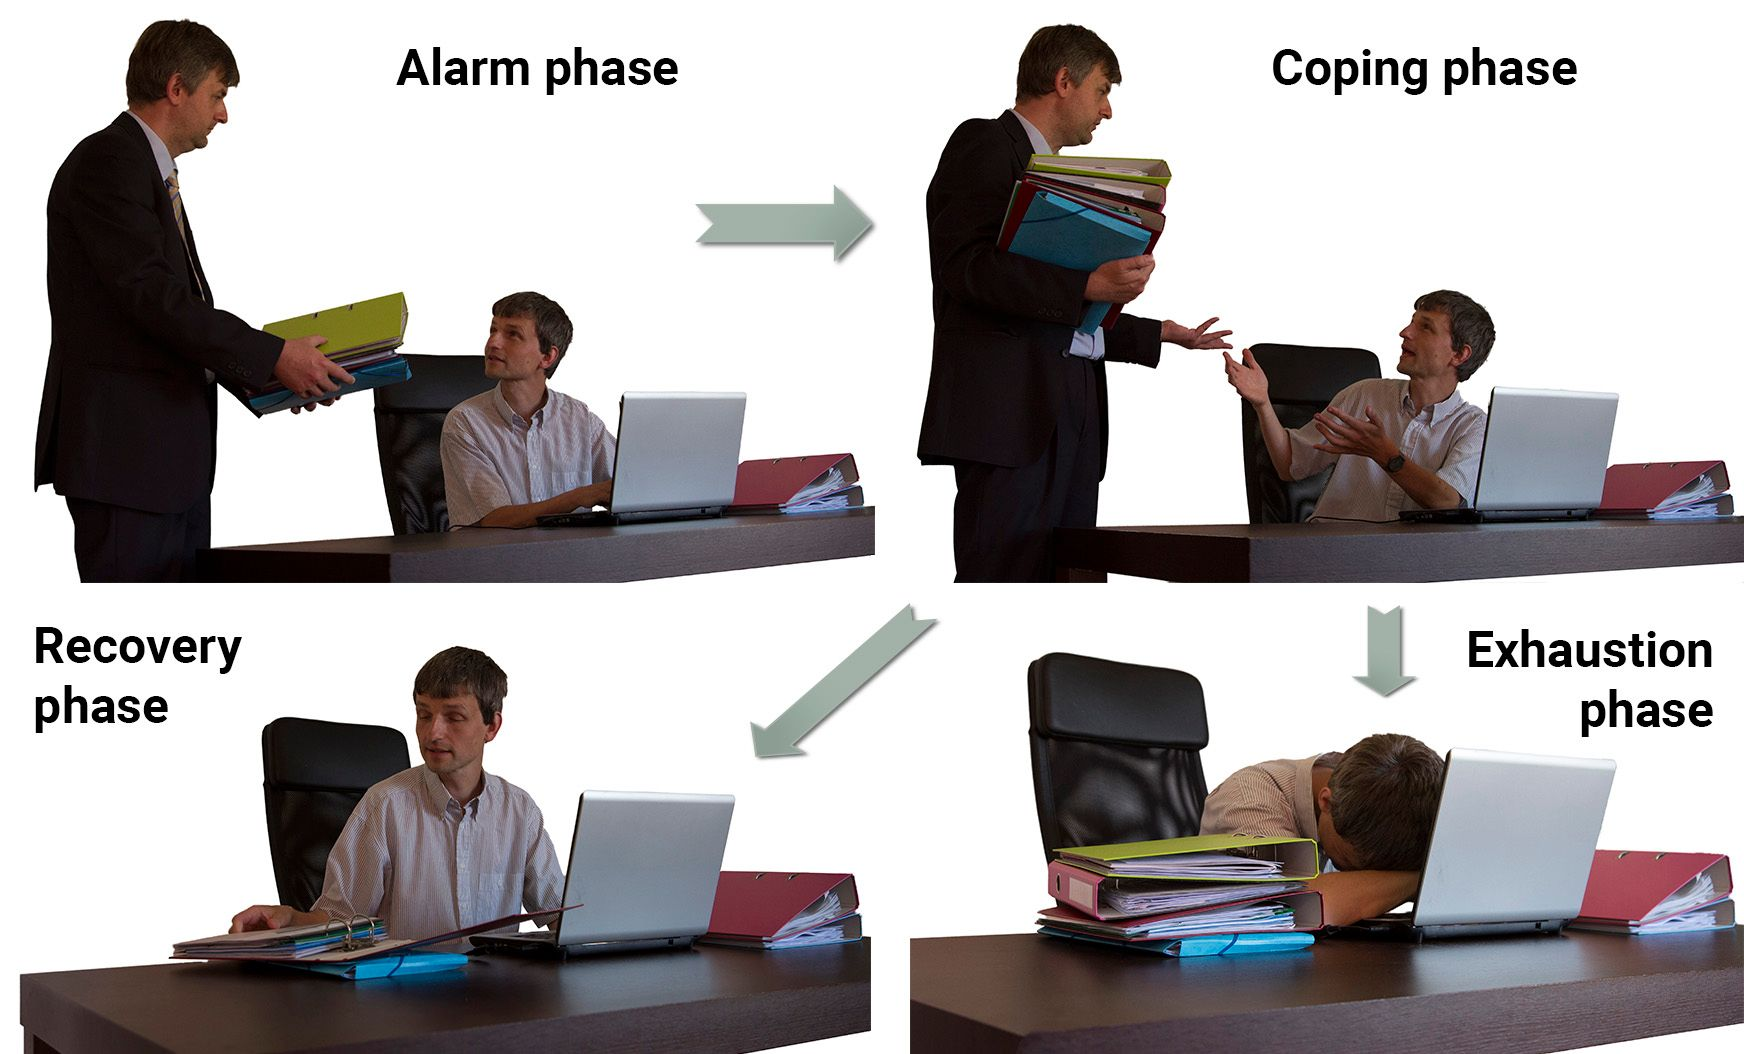 The three phases of stress at work